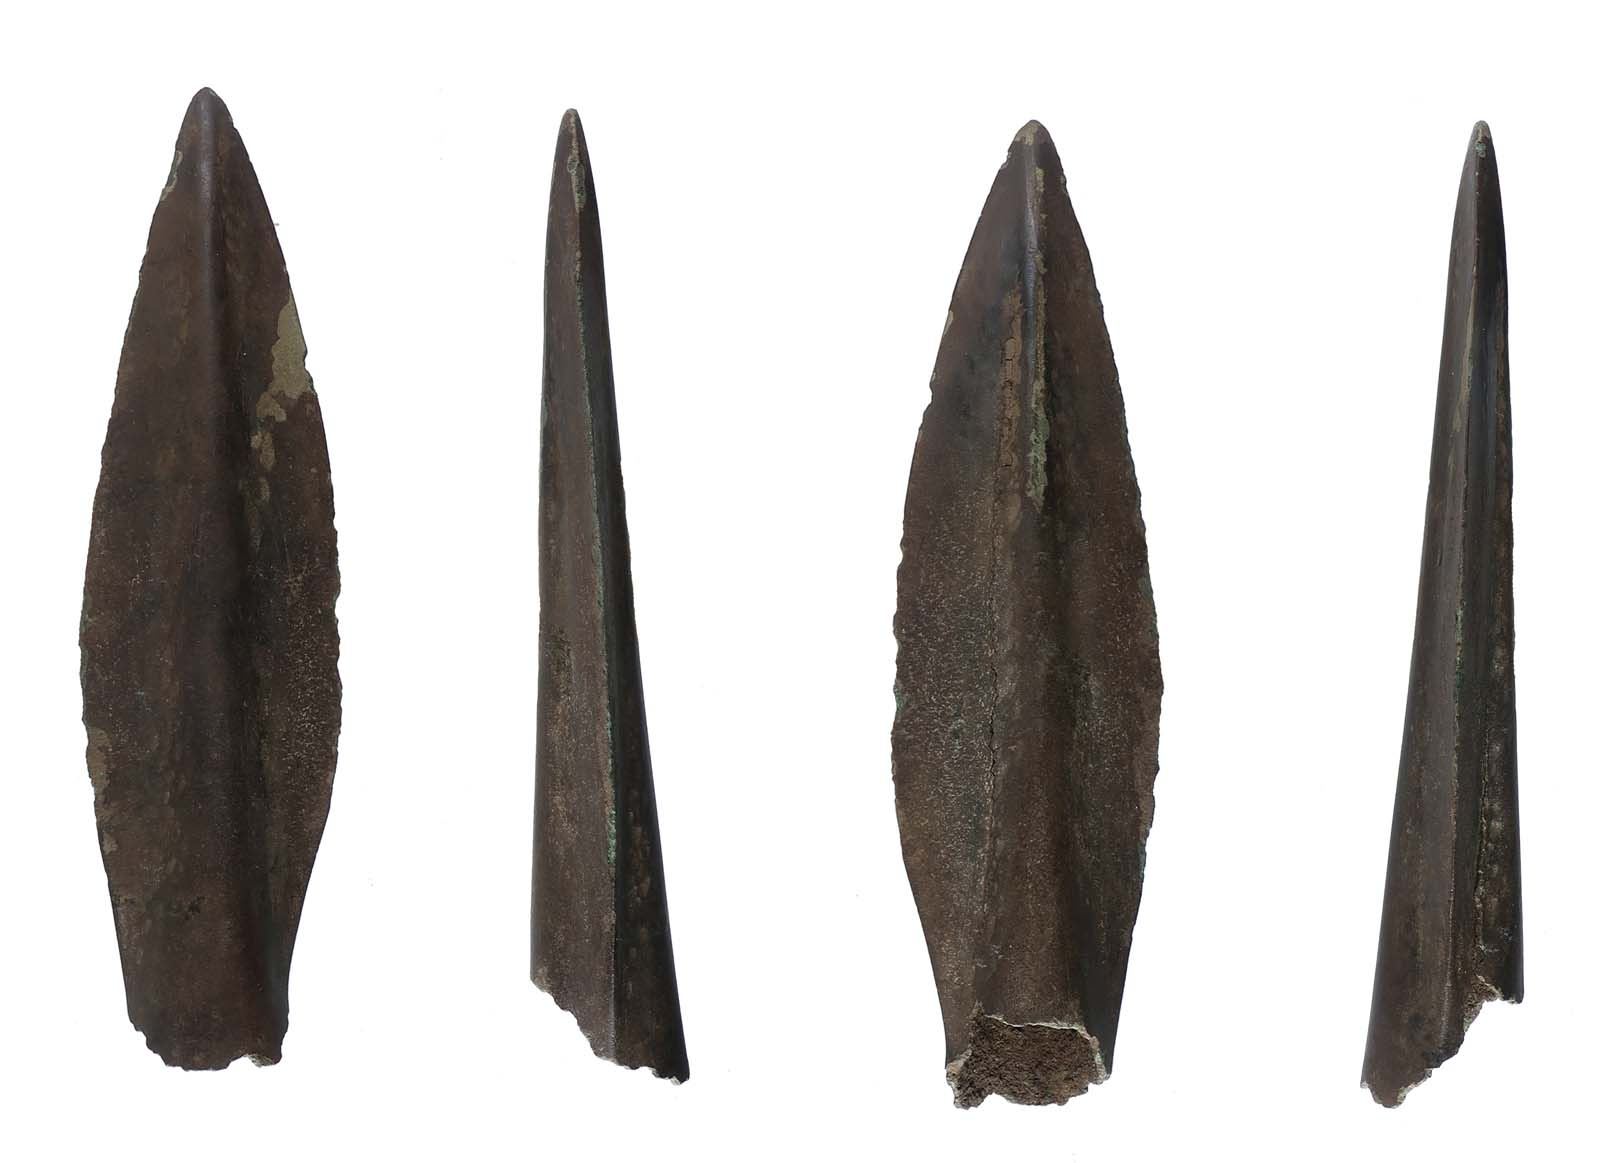 four views of a metal spearhead